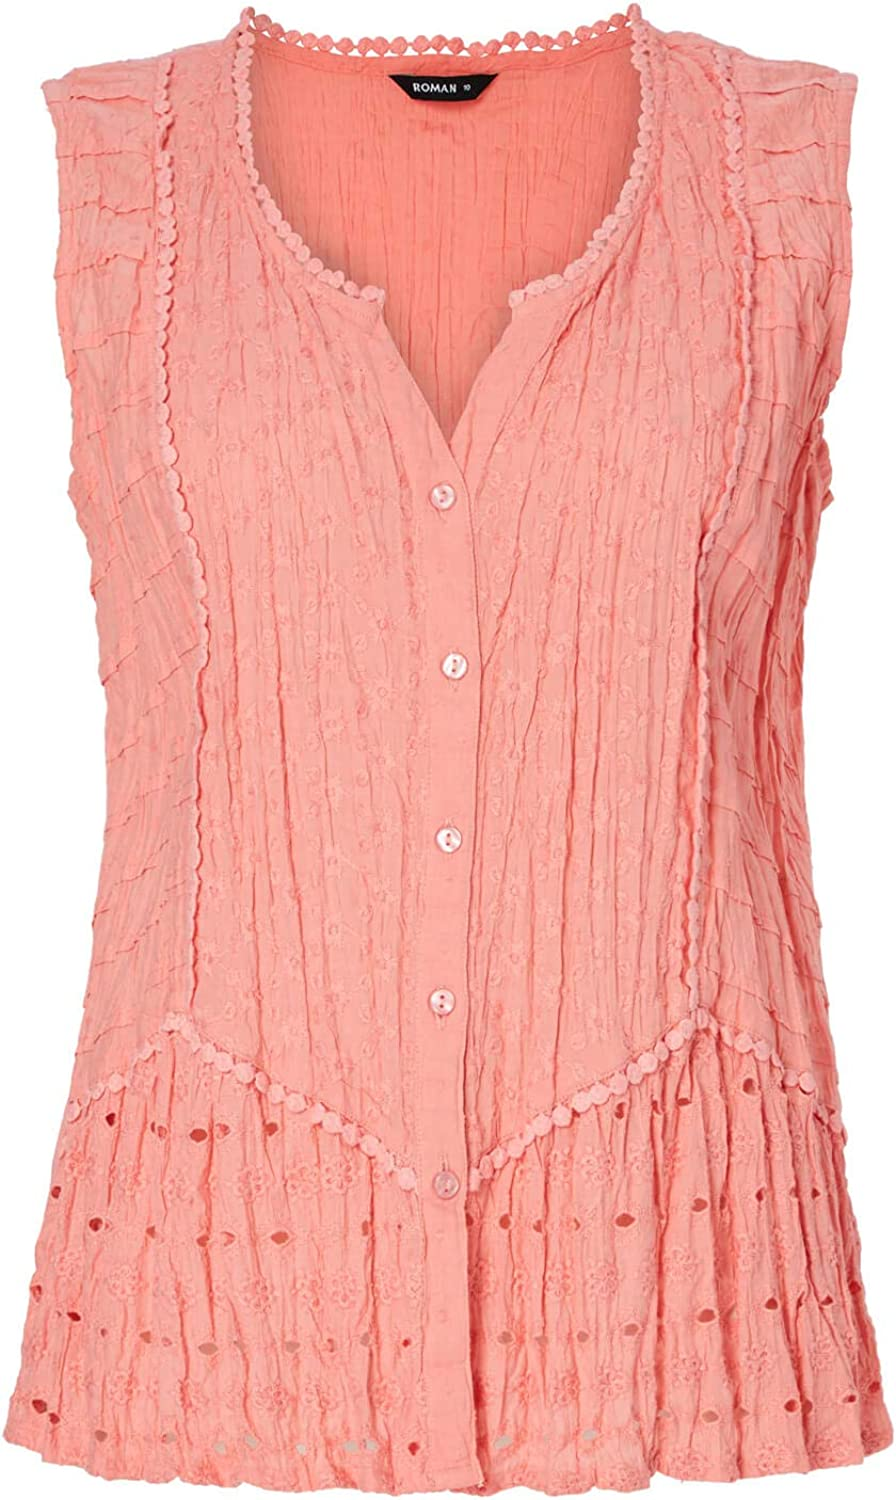 Roman Originals Women Crinkle Blouse Top Ladies 100/% Cotton Lace Detail Embroidered Sleeveless Formal Casual Tie Notch Neck Broderie Anglaise Shirt Cami Camisole Vest